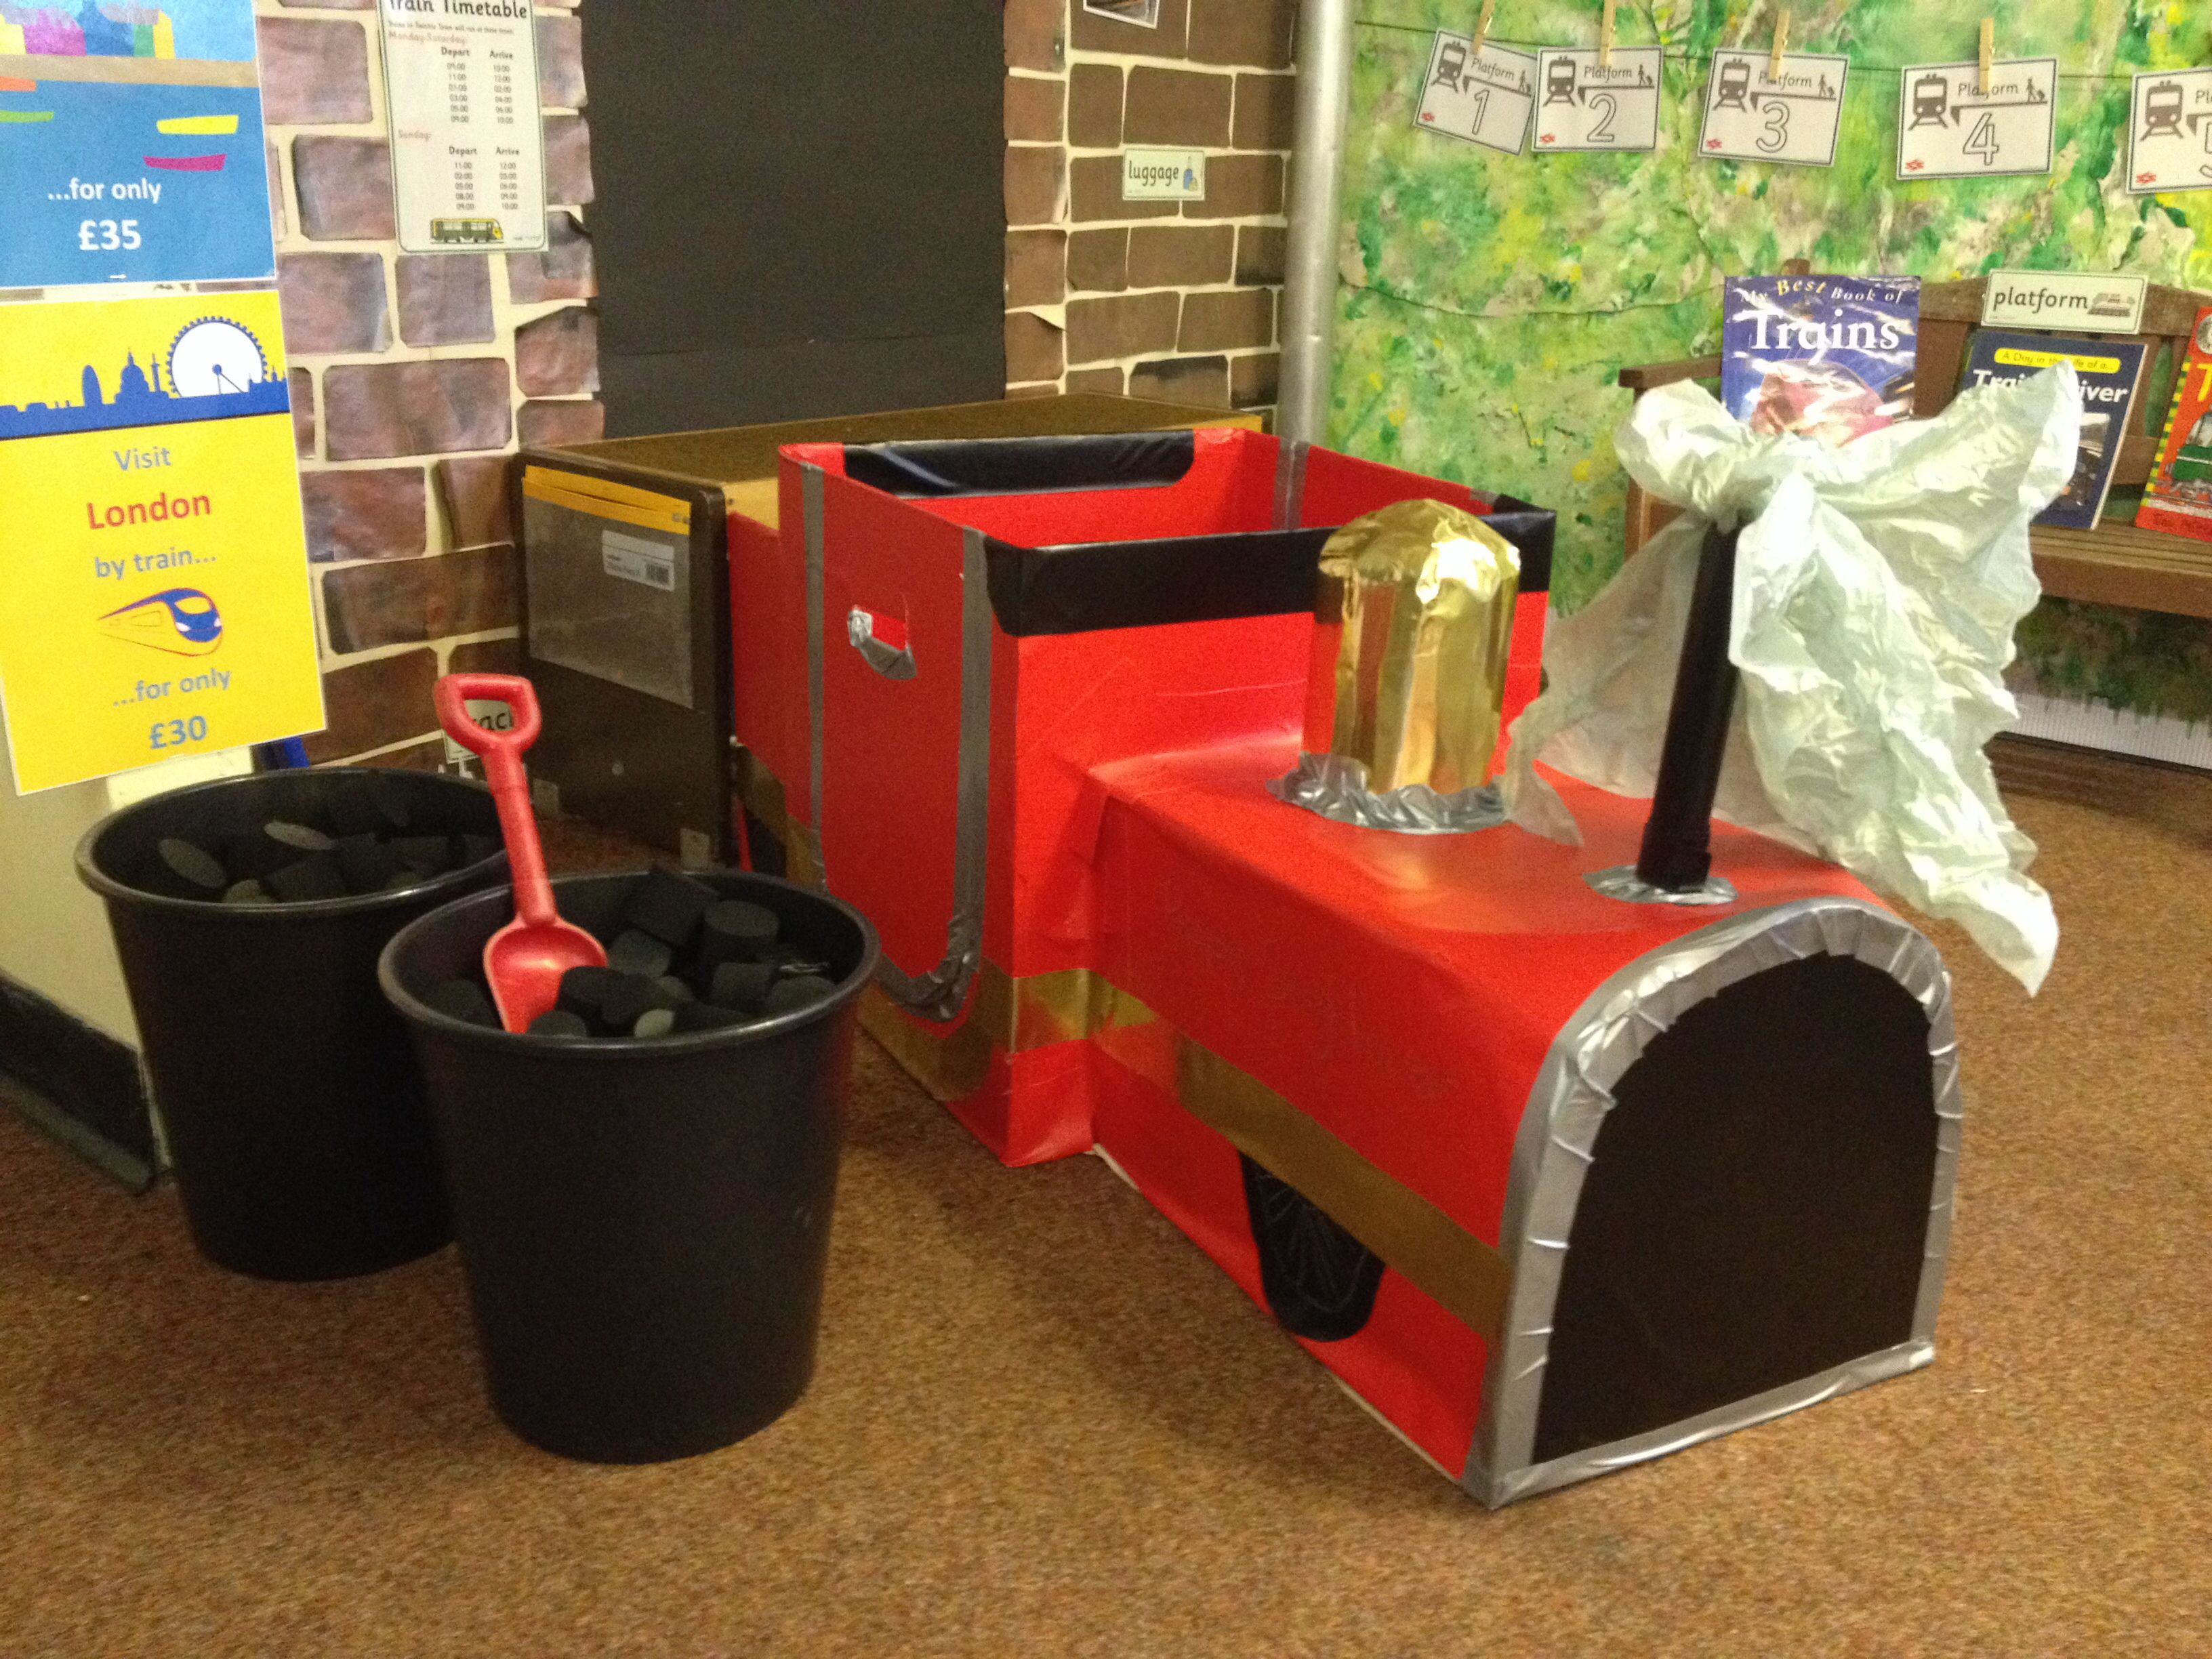 train station role play early years classroom pinterest role play plays and dramatic play. Black Bedroom Furniture Sets. Home Design Ideas